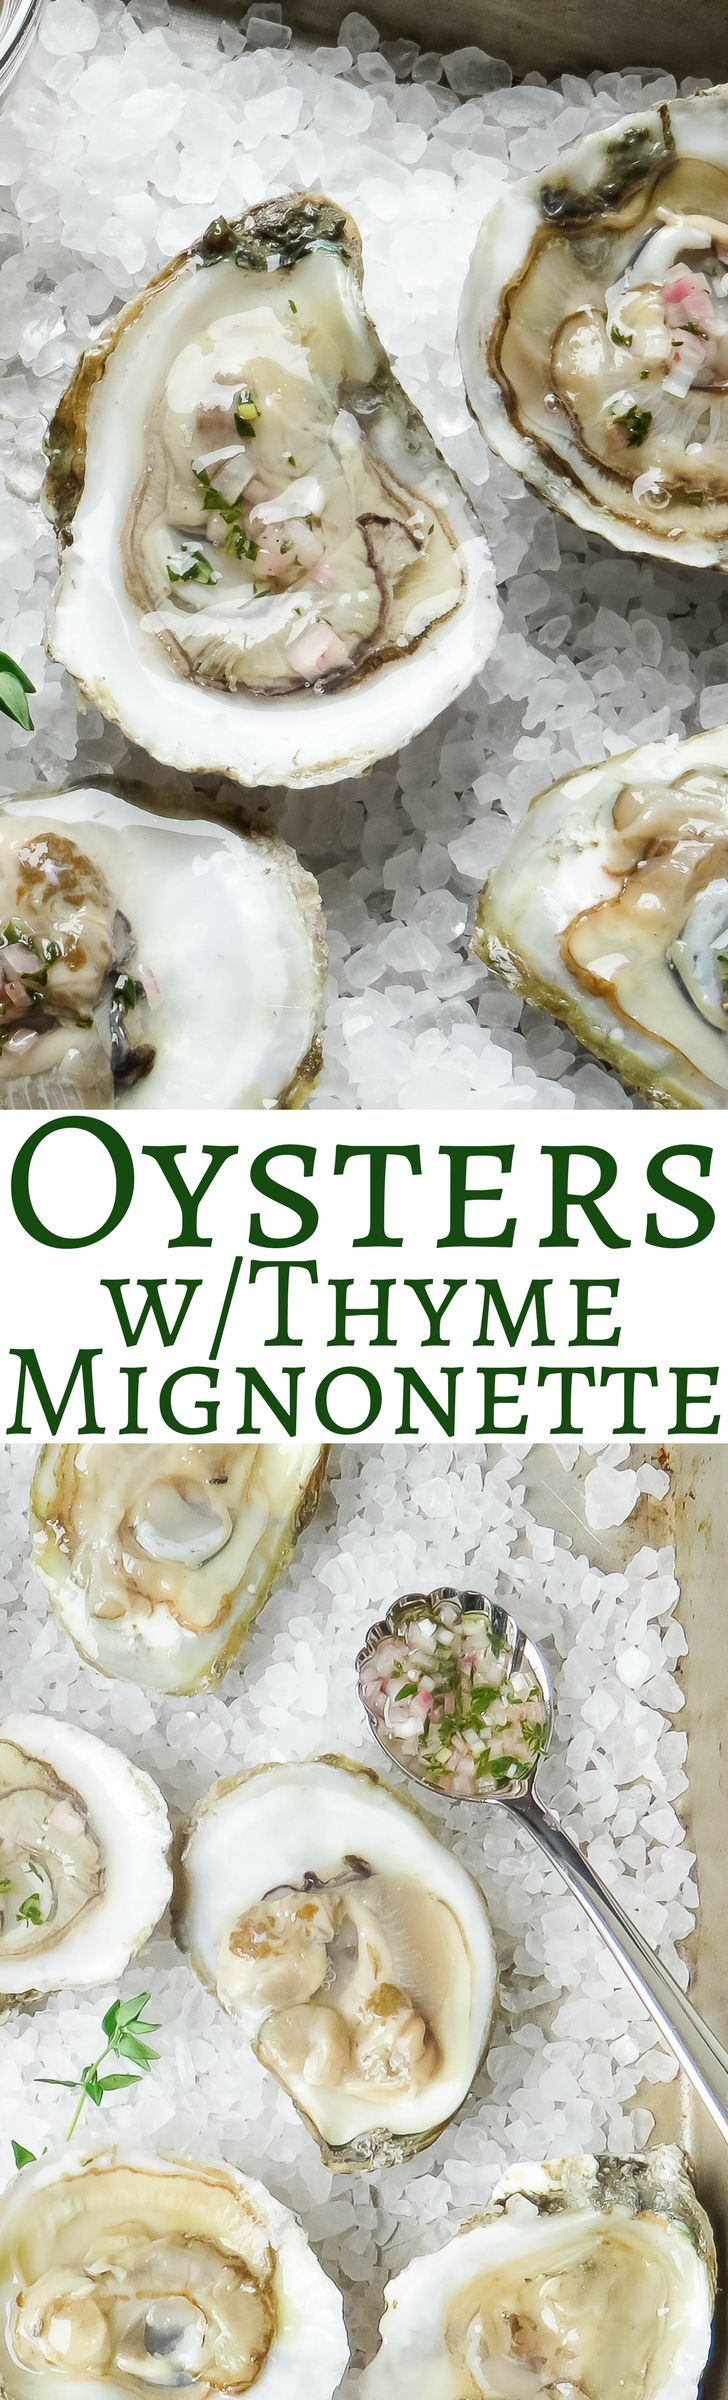 Fresh shucked oysters on the half shell with a light thyme mignonette!   via @GarlicandZest